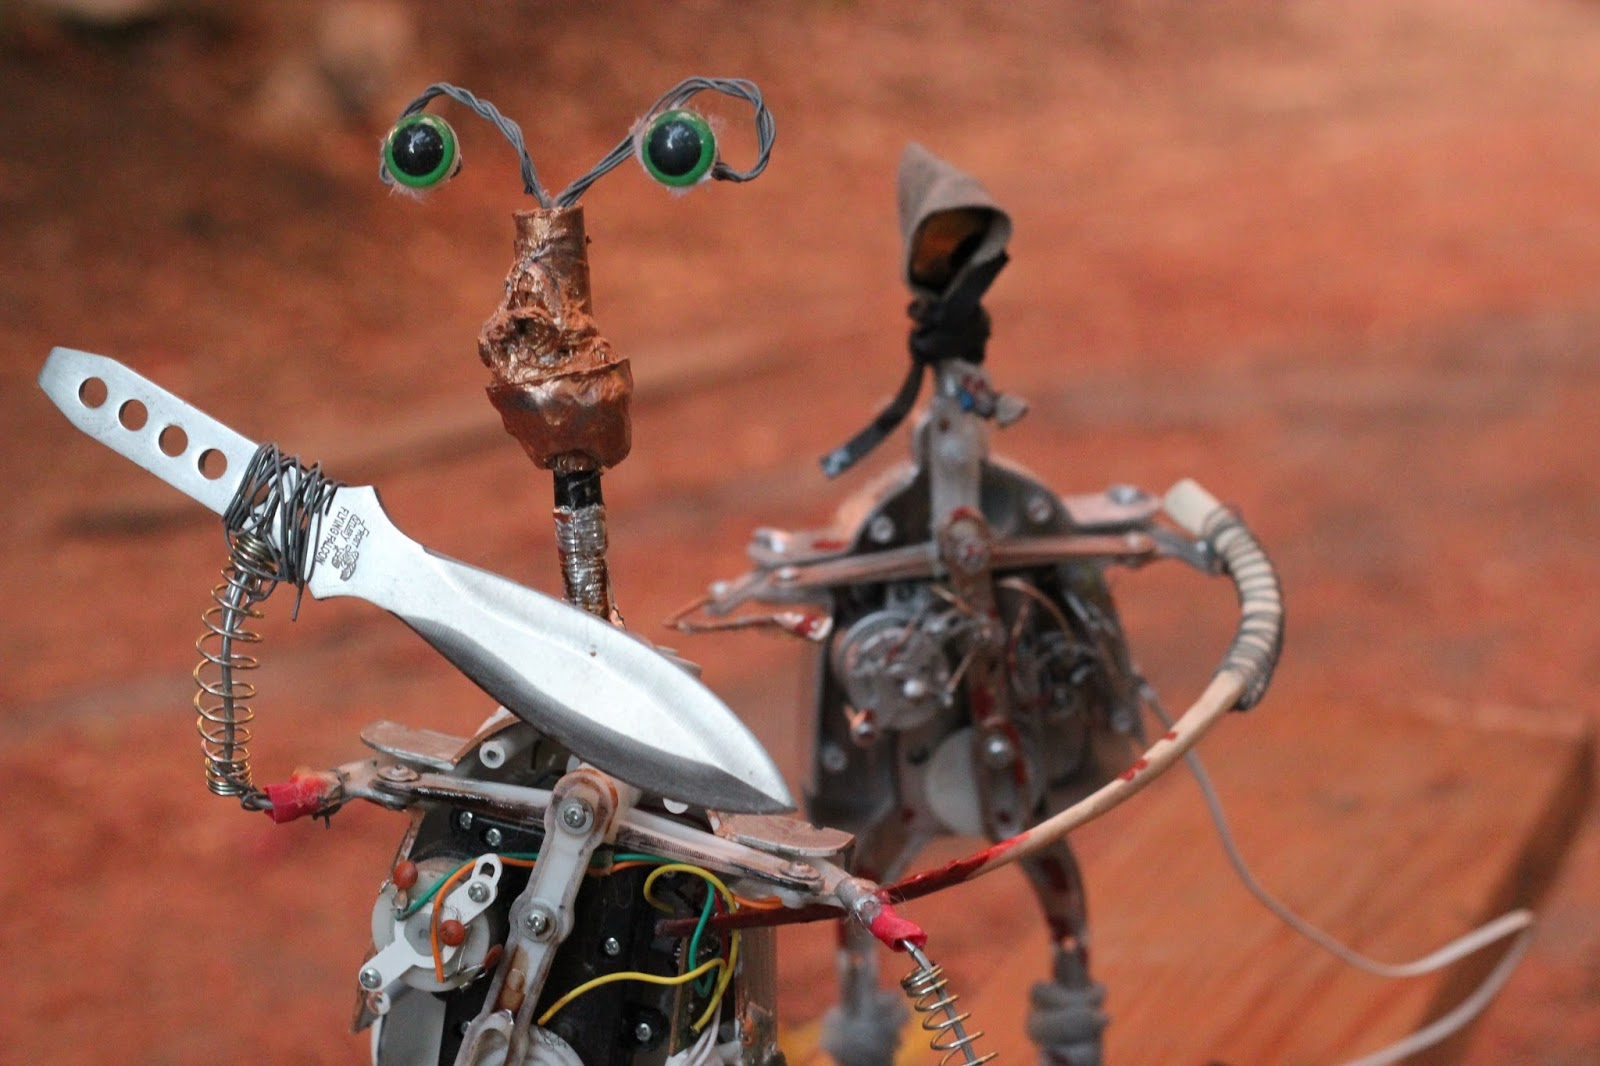 Killer Toy Robots - David Ury Sends Killer Toy Robots Out on a Rampage in Augustine